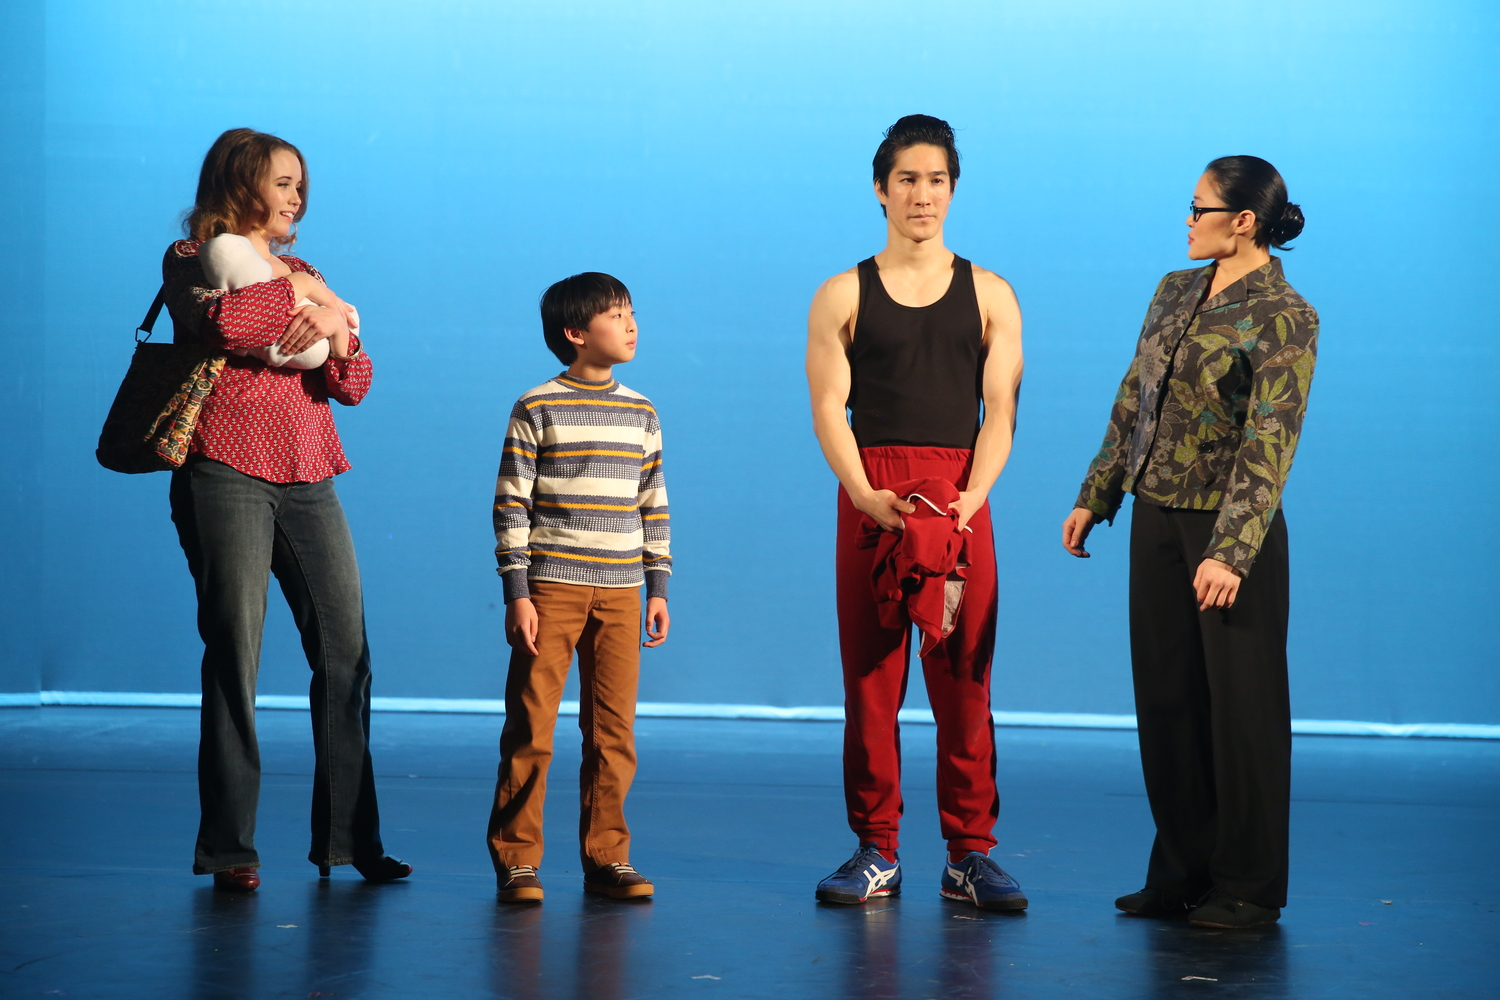 Phoebe Strole, Bradley Fong, Cole Horibe, and Kristin Faith Oei. Photo by Joan Marcus for Signature Theatre, 2014